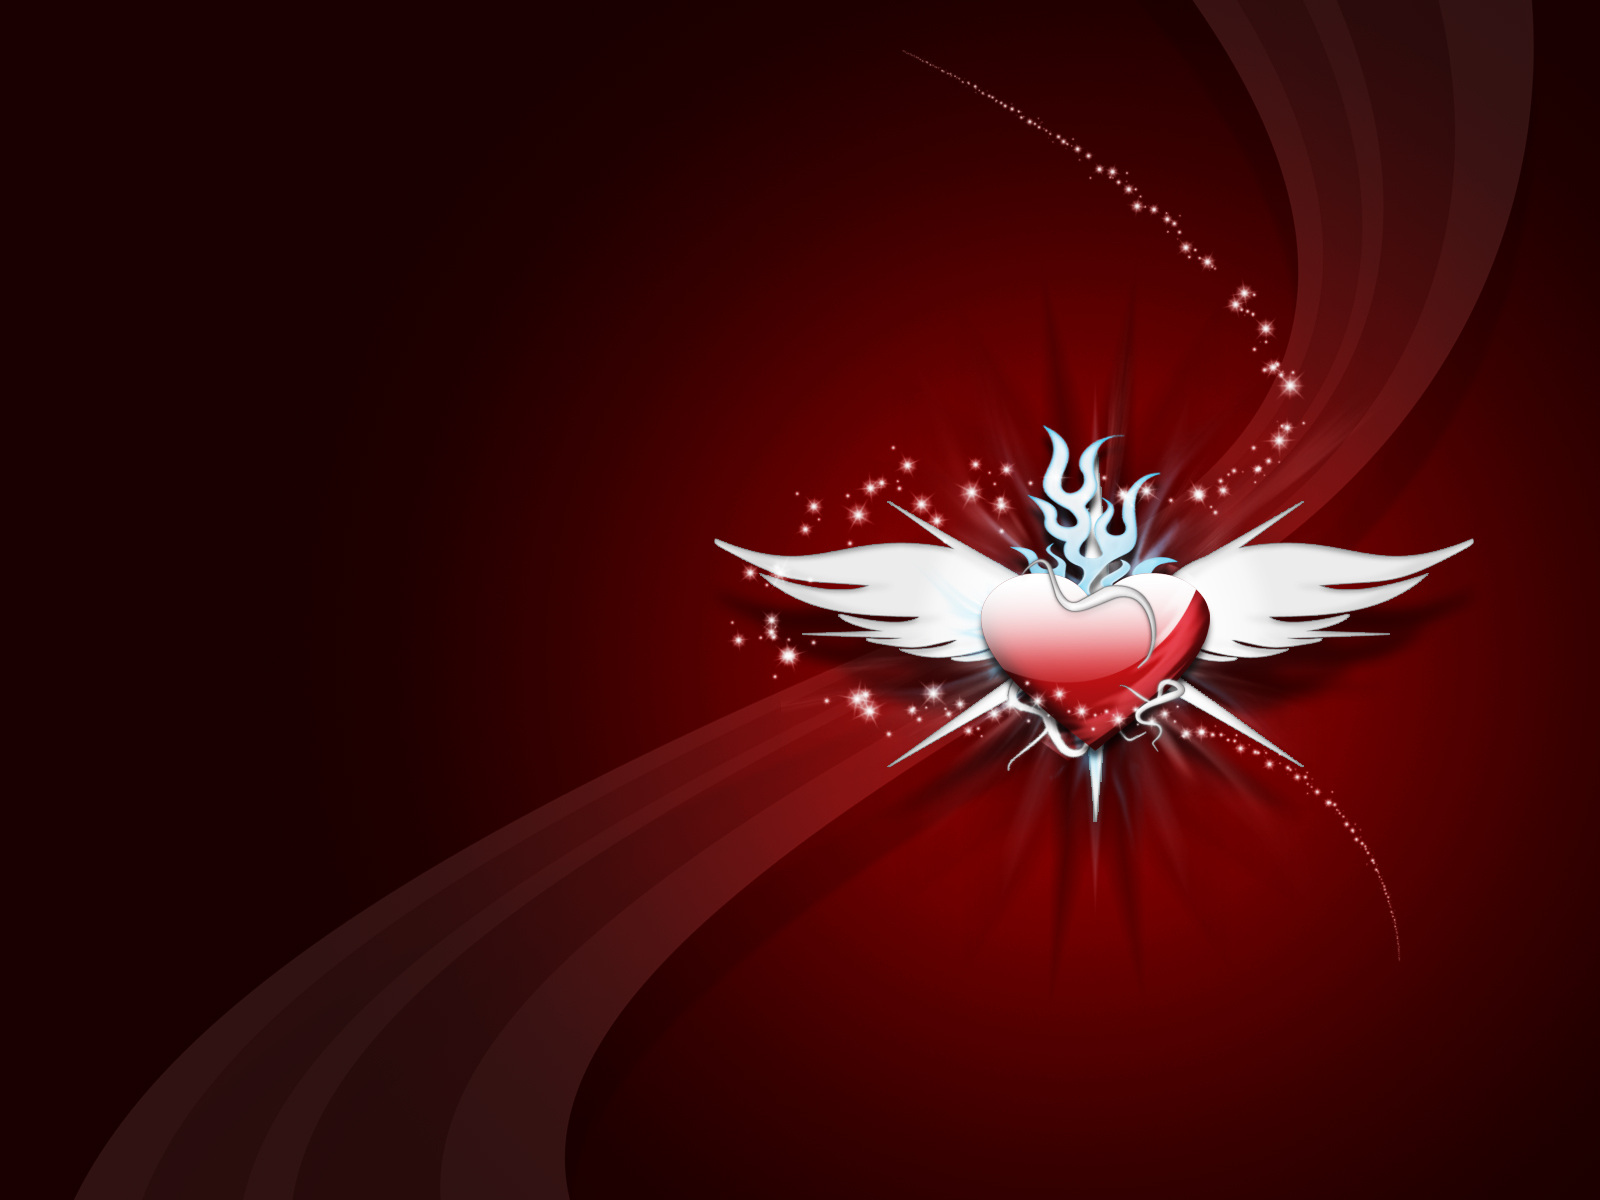 Love wings wallpaper, free pc wallpaper Simple Wallpapers